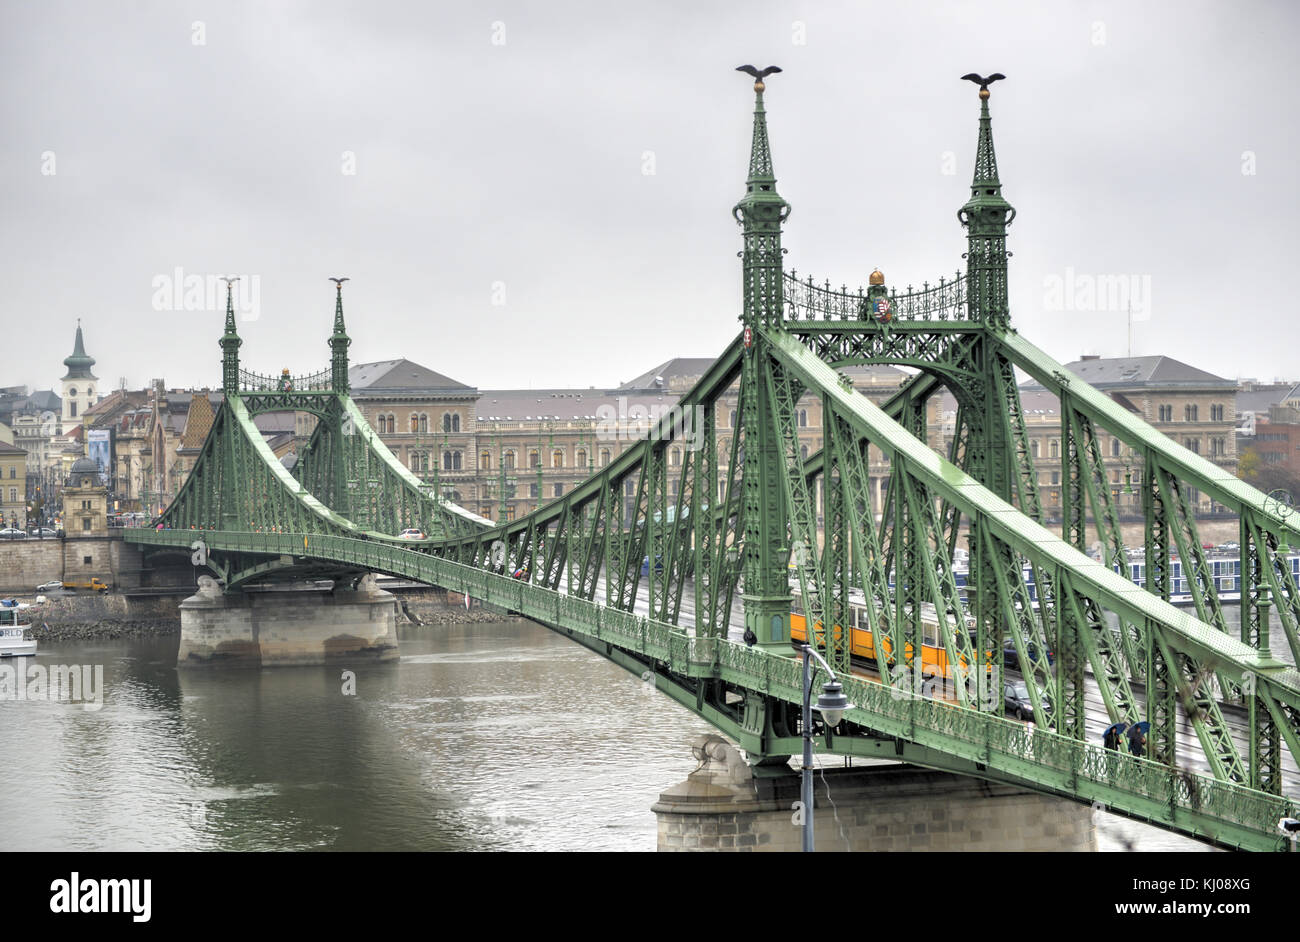 Liberty Bridge in Budapest, Hungary with a yellow tram crossing on a cloudy winter day. Stock Photo